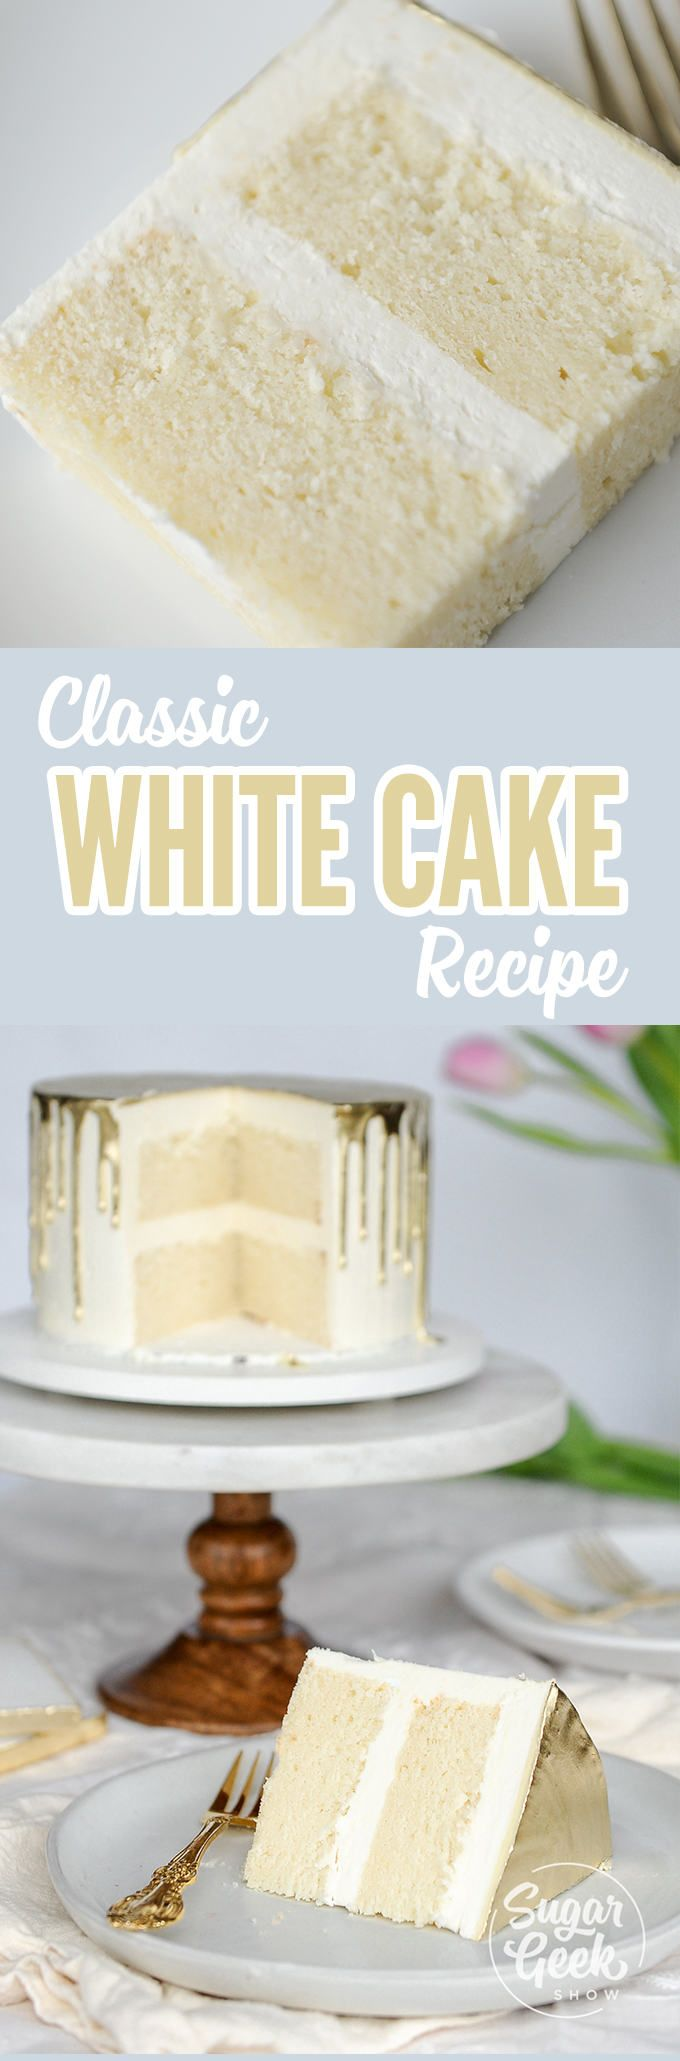 The best white cake recipe! This gets rave reviews from all my brides and is the only white cake recipe you'll ever need is part of White cake recipe -